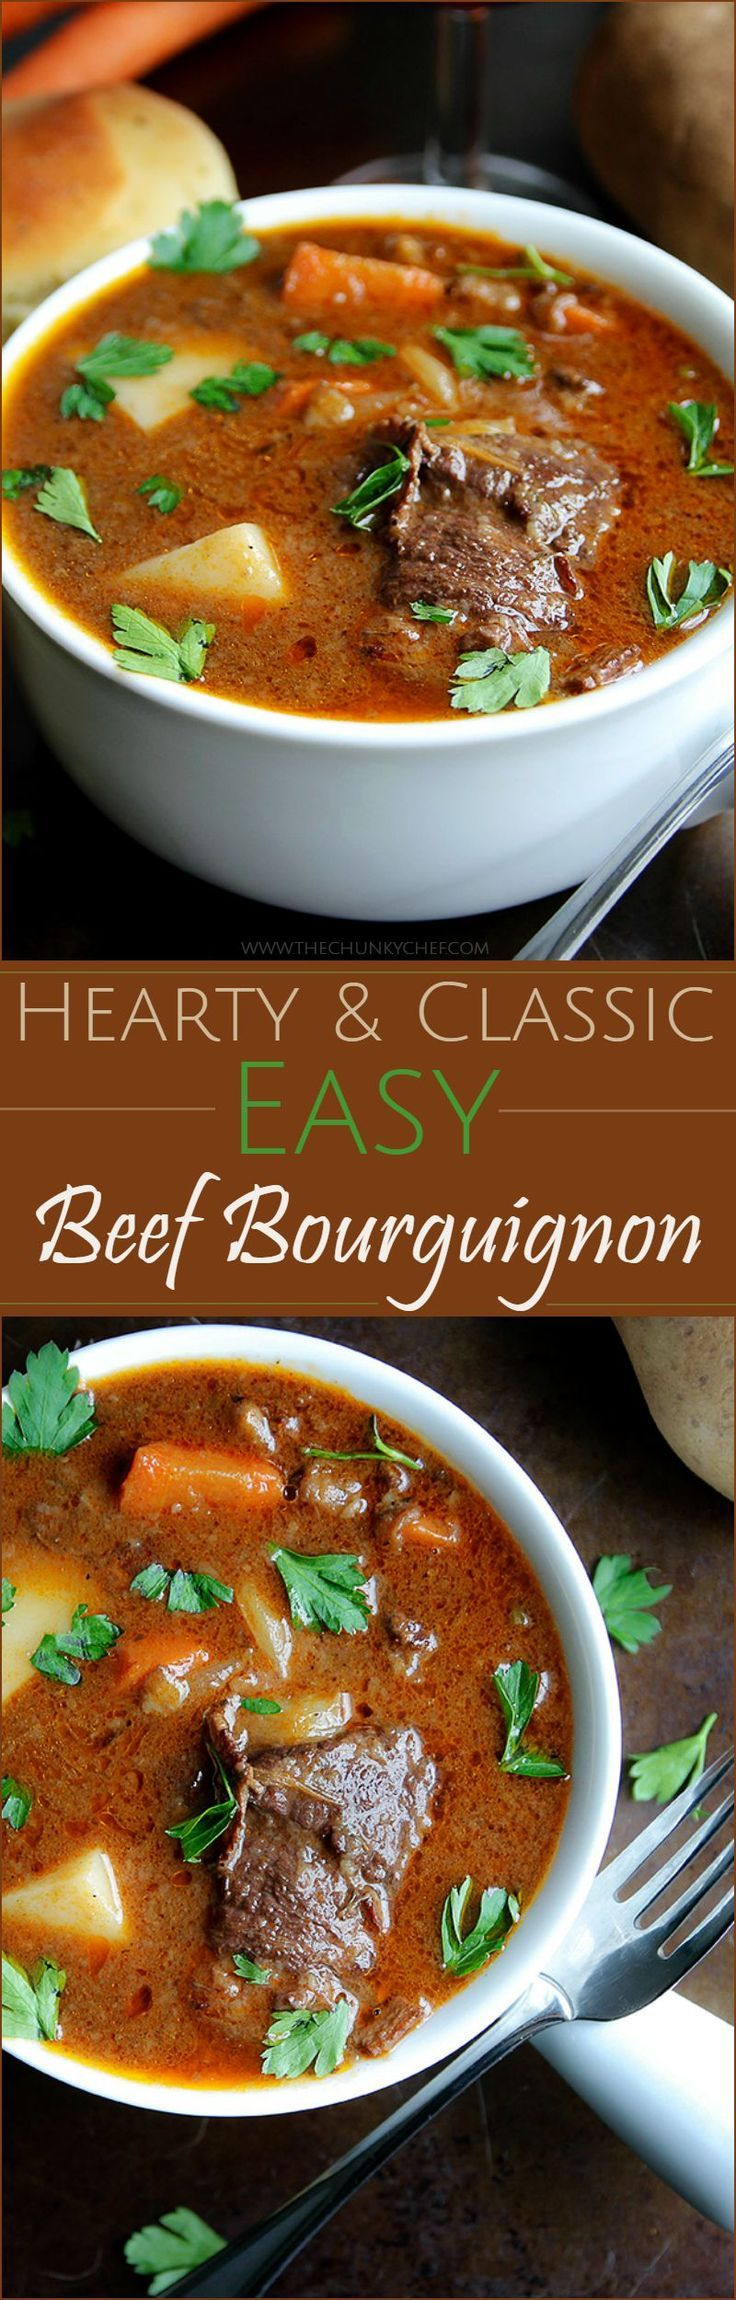 Beef Bourguignon | The Chunky Chef | Such a classic Fall recipe... revamped a little bit and made easy to make for your whole family. Try this beef bourguignon soon!